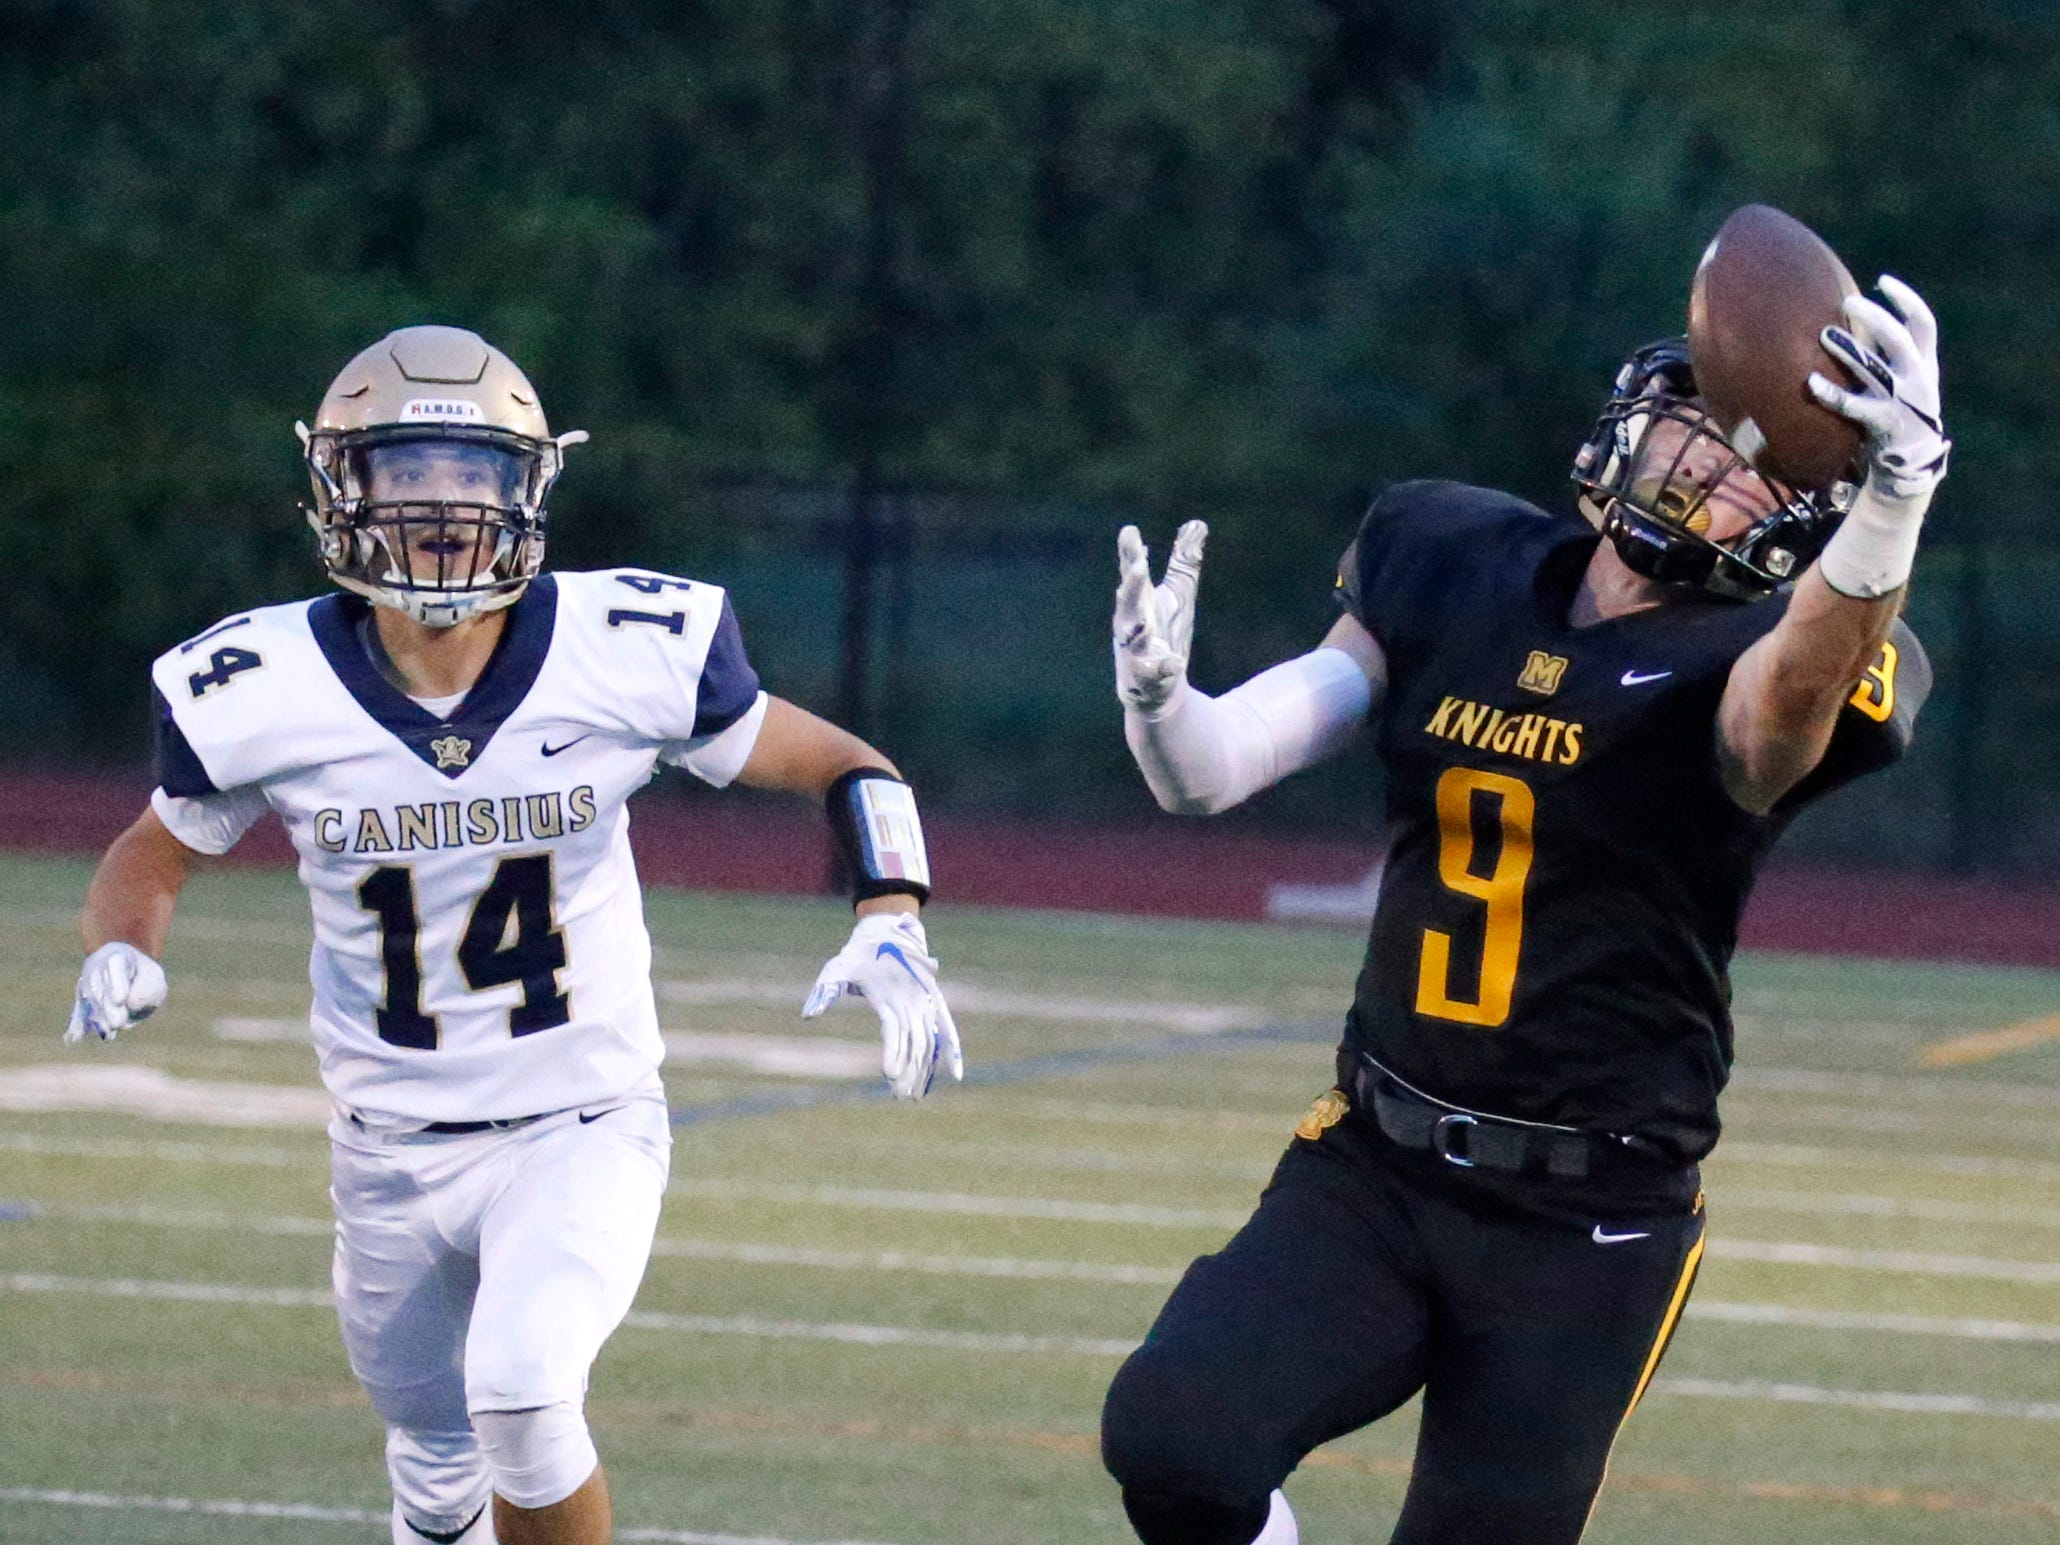 McQuaid's Ben Beauchamp catches a pass against Canisius in the first quarter at McQuaid Jesuit High School.